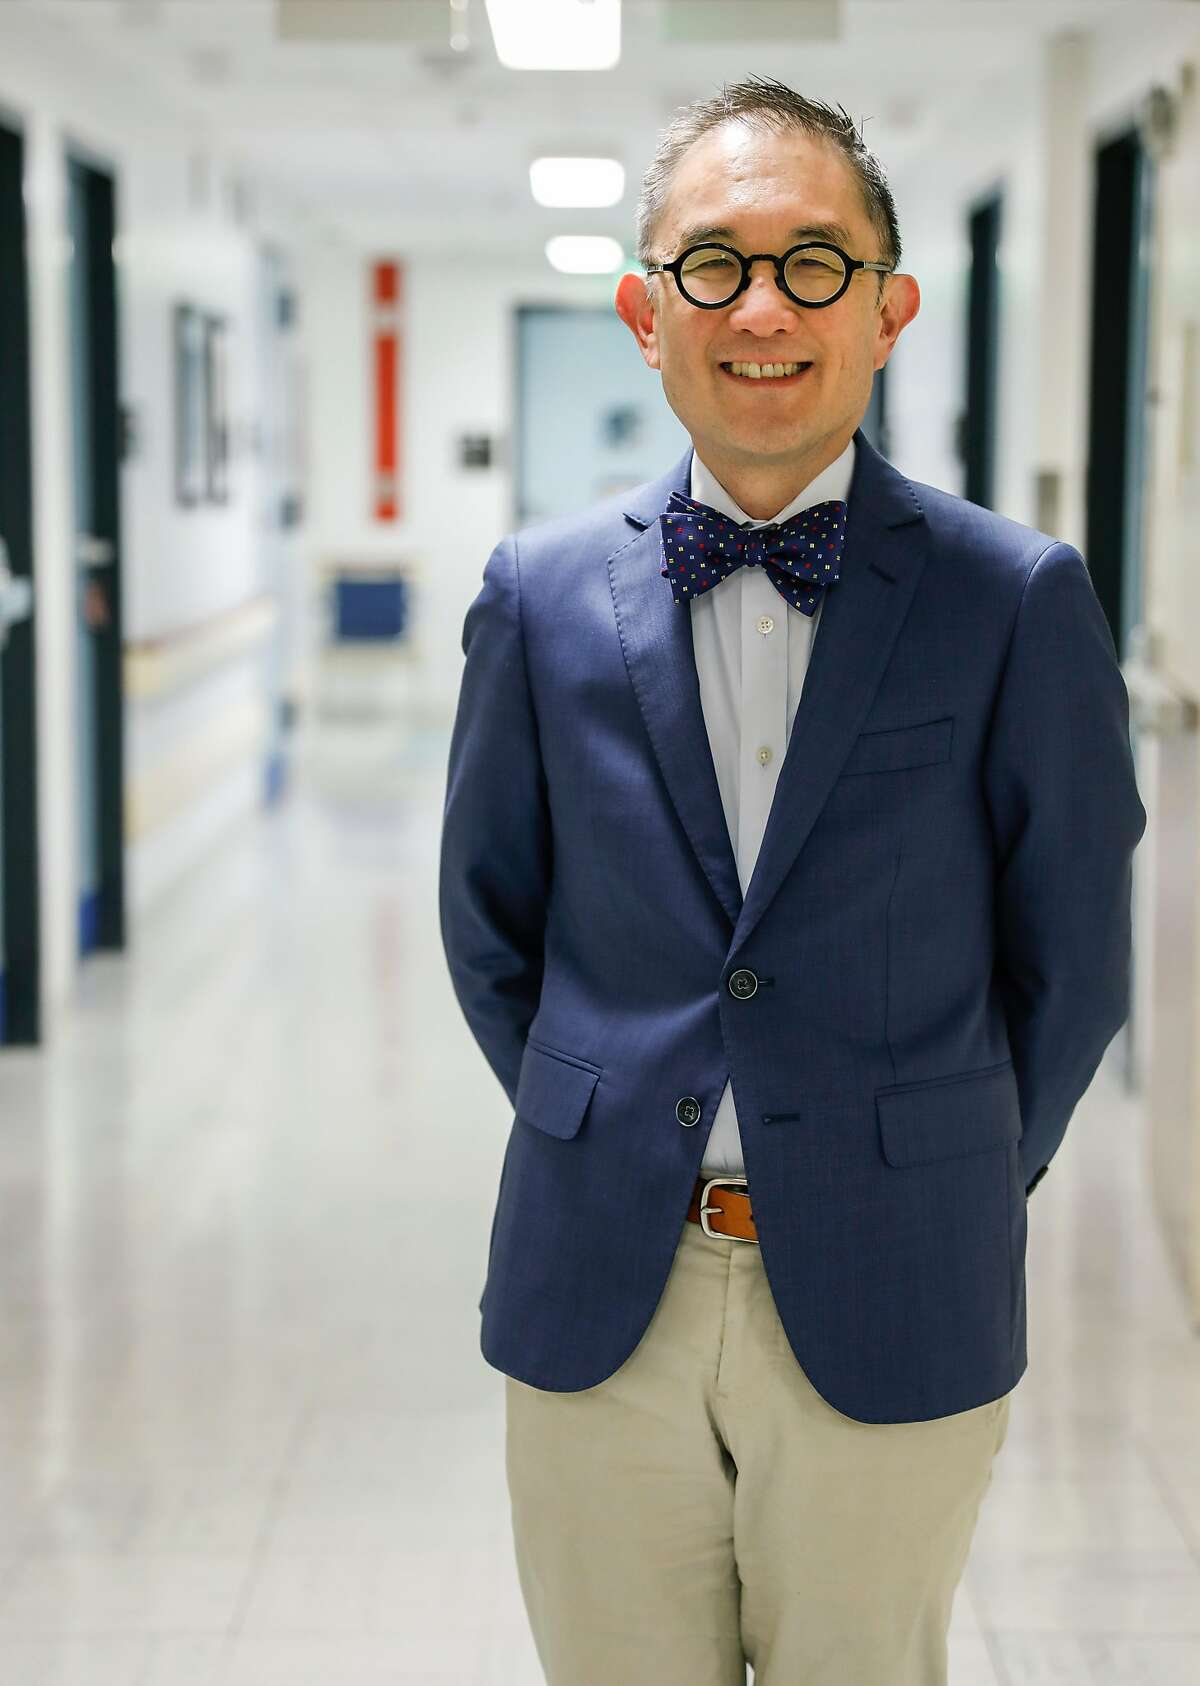 Dr. Kewchang Lee is seen at the VA Medical Center on Friday, March 16, 2018 in San Francisco, Calif. Dr. Lee is part of a study in the VA system examining whether doctors gaining knowledge of patients' genetic composition can help shape better, more precise treatment plans for depression.